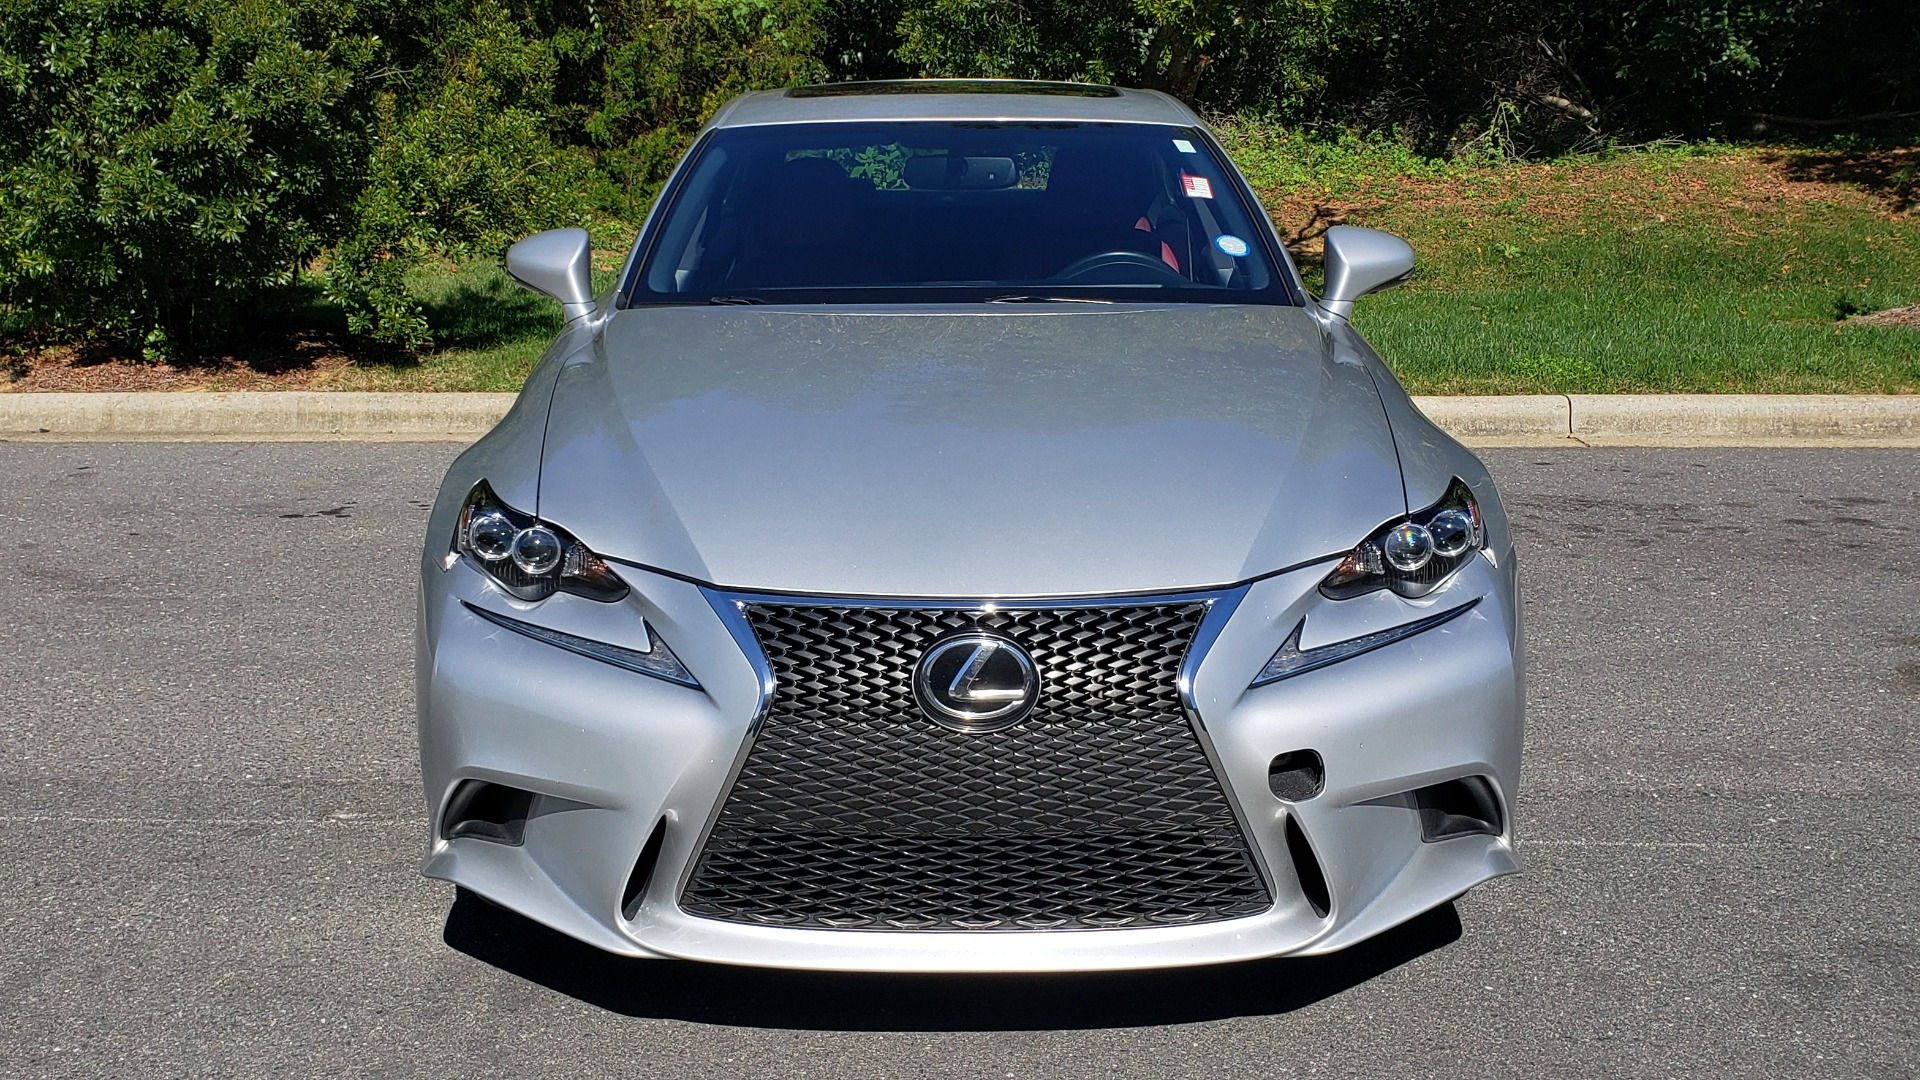 Used 2015 Lexus IS 350 F-SPORT / AWD / NAV / SUNROOF / BSM / REARVIEW for sale Sold at Formula Imports in Charlotte NC 28227 22